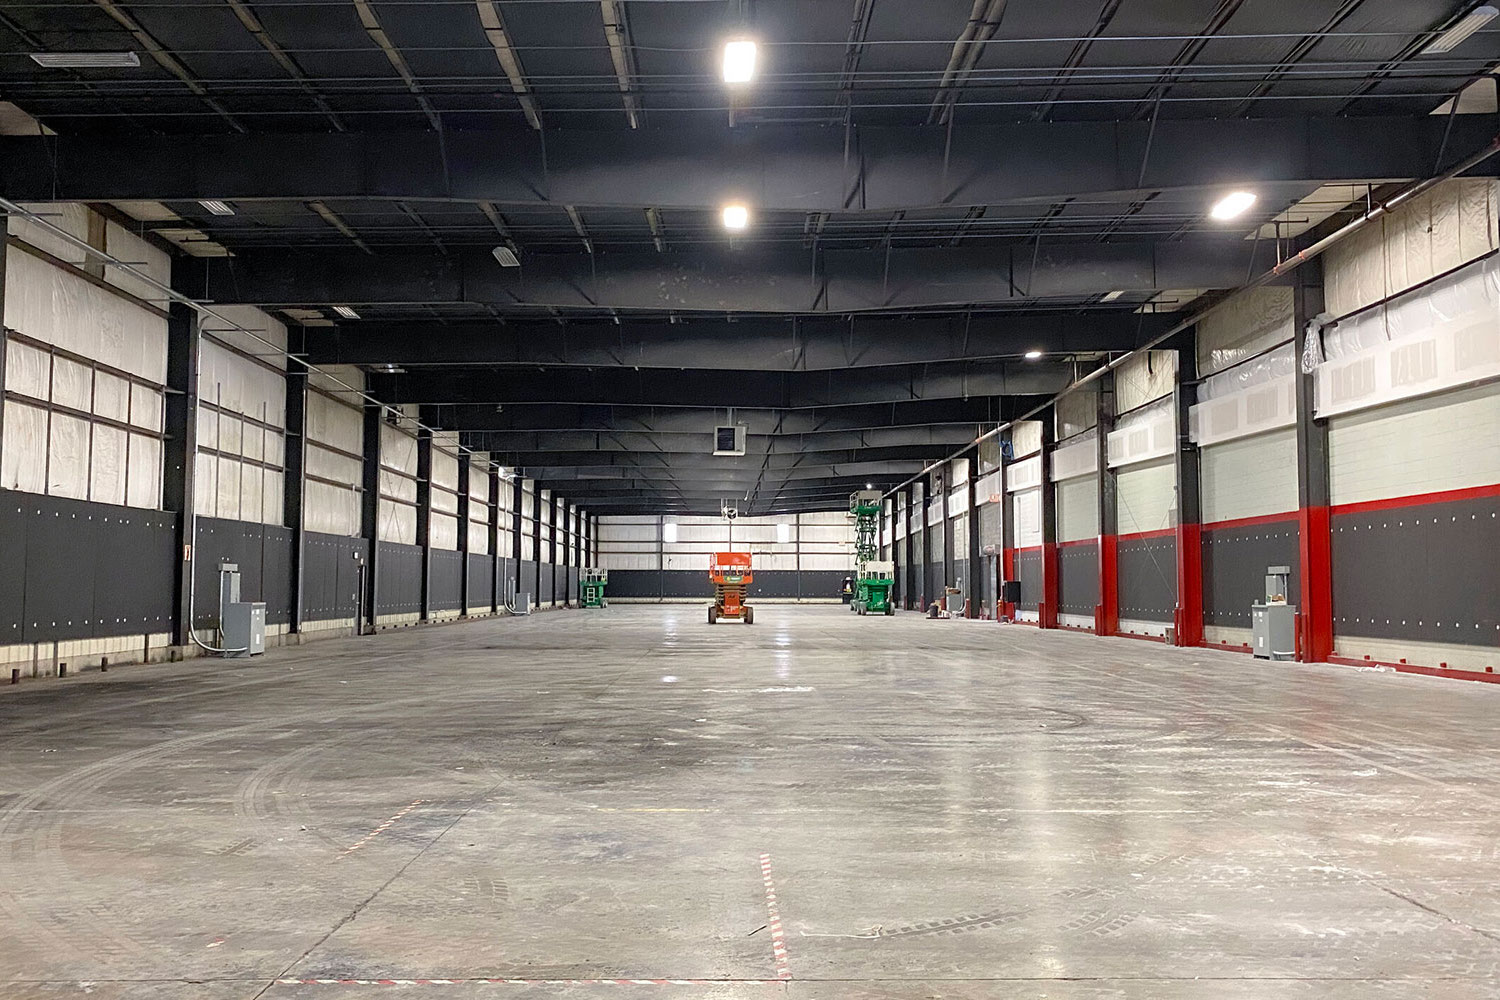 Upriver Studios is a 100,000 ft2 film/TV production facility located in New York owned by Stockade Works. WSDG service were secured to optimize the acoustics of the building and its three sound stages. Stage 1.